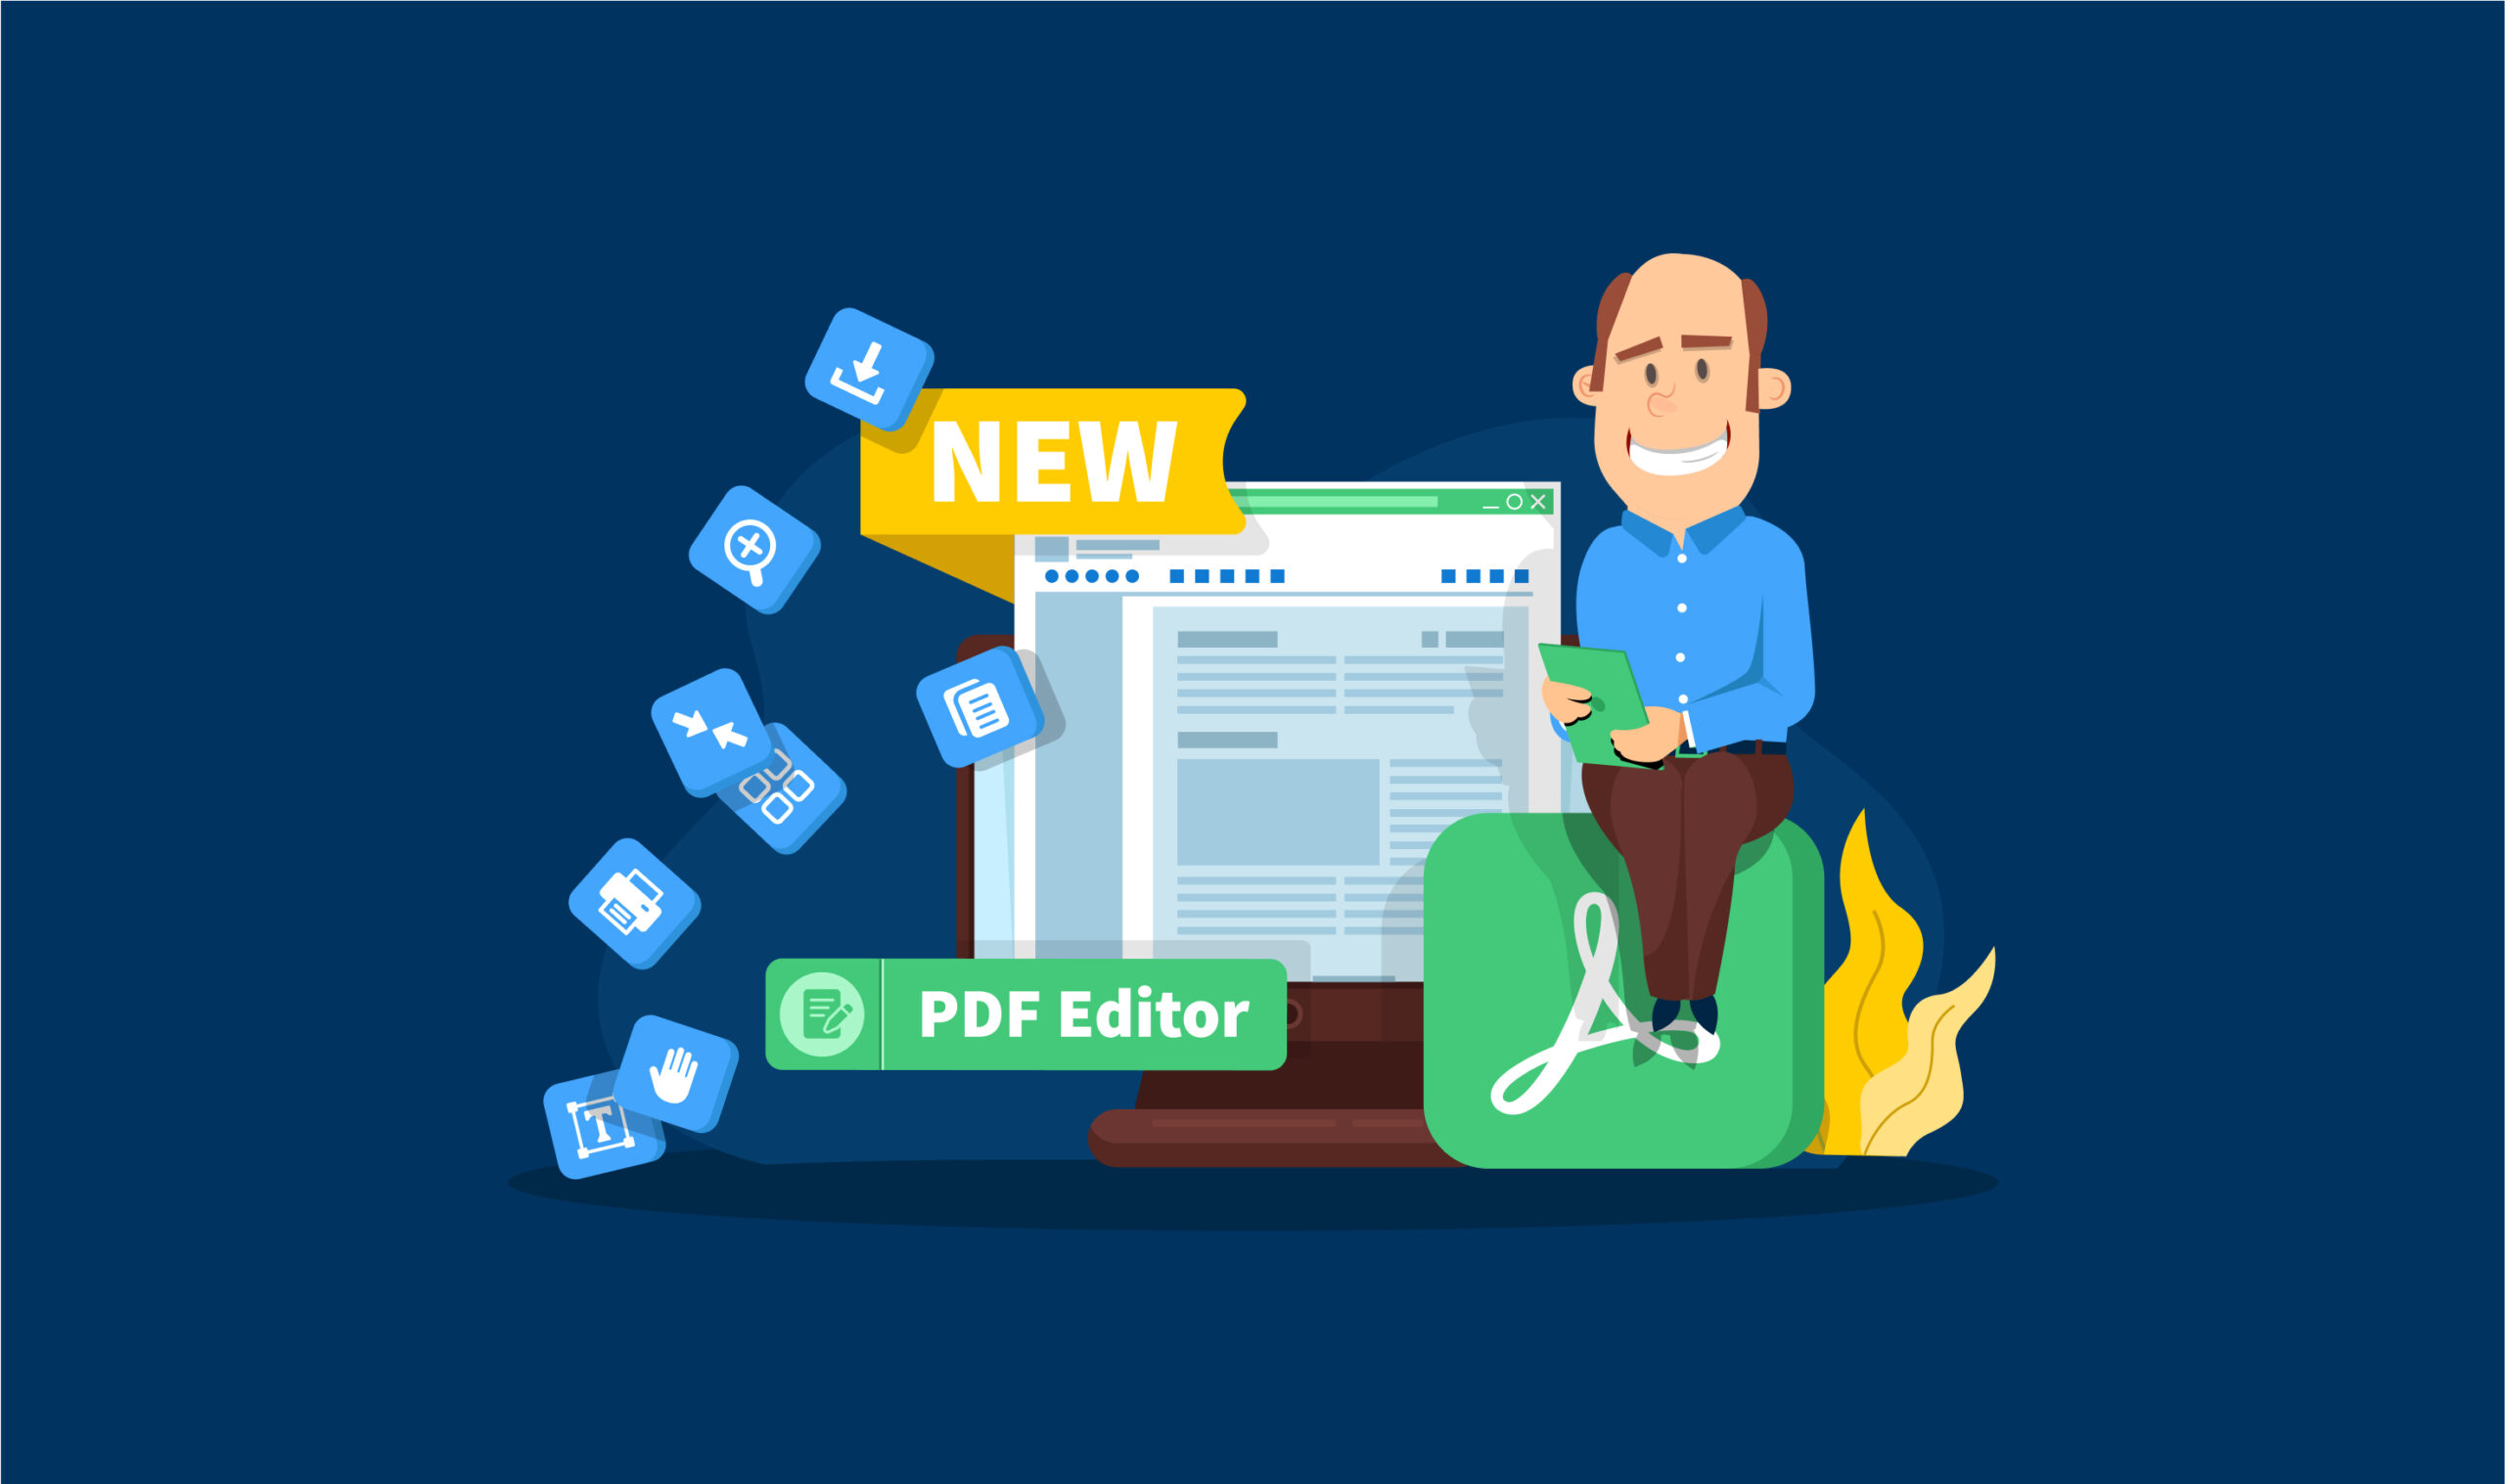 Introducing Built-in PDF Editor: Replace Adobe Acrobat and Other Tools